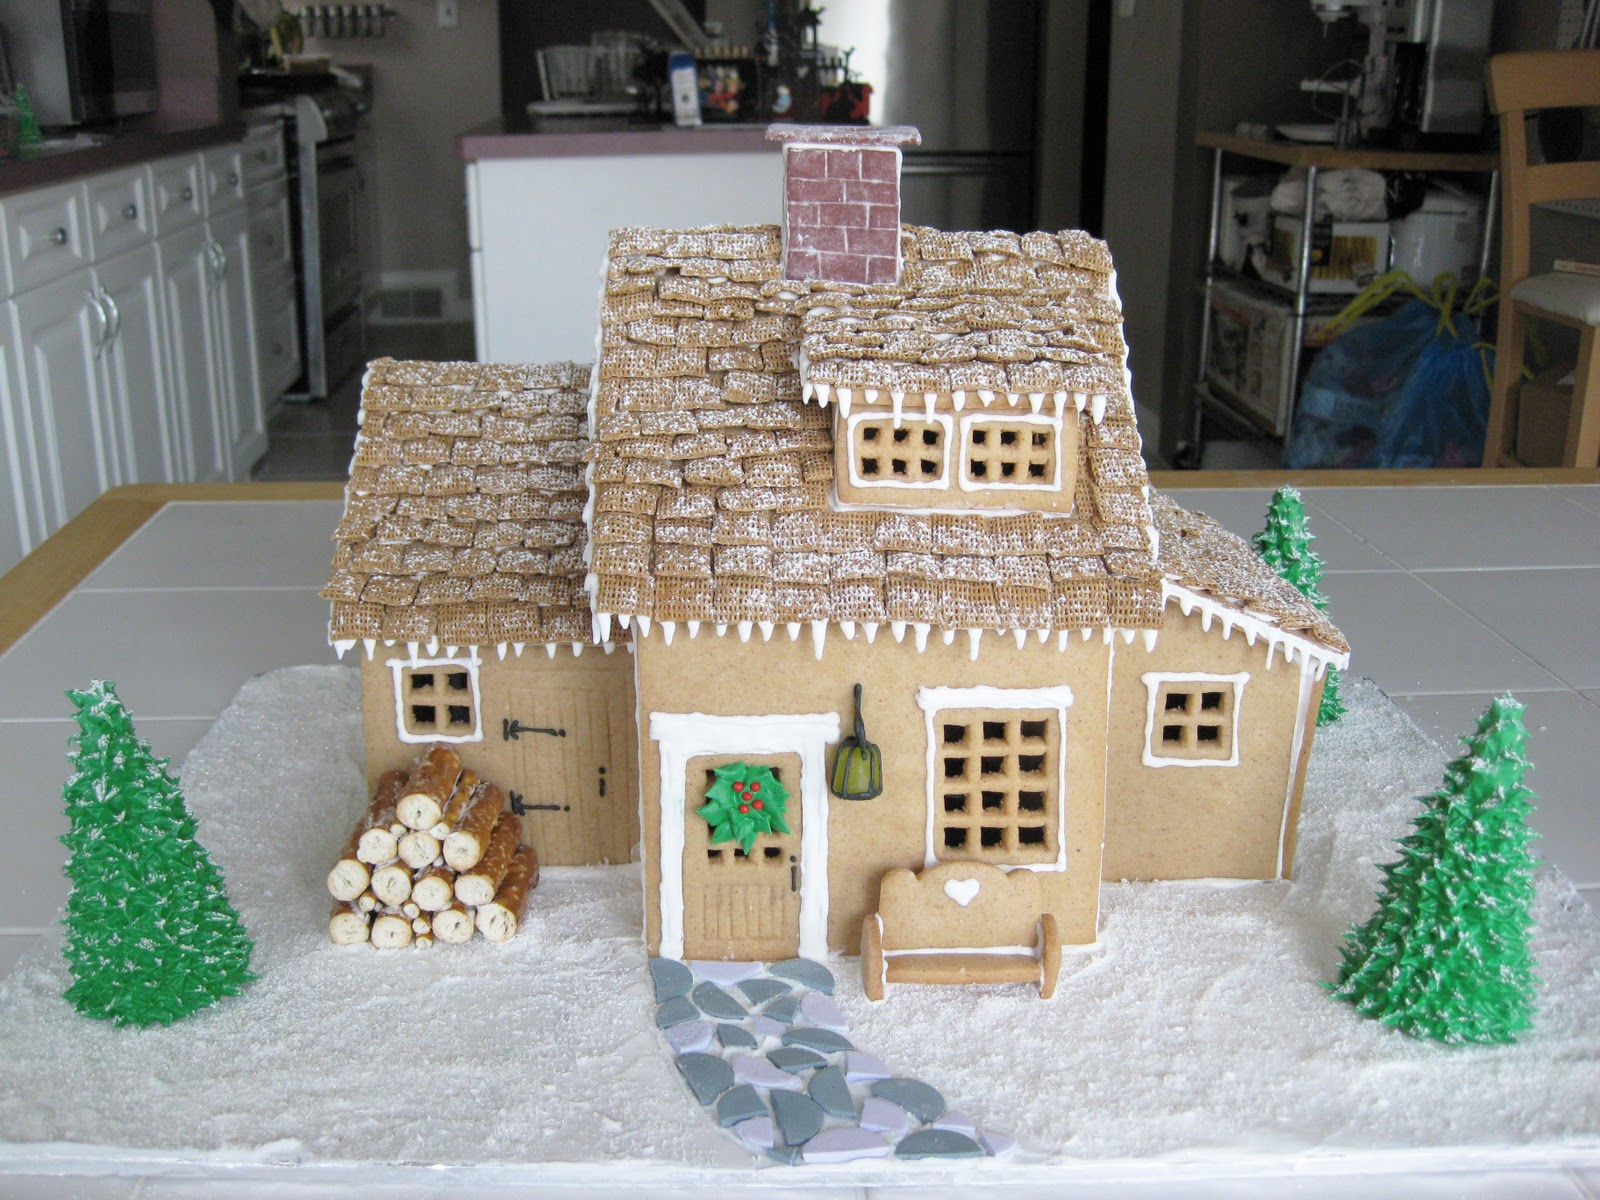 Bloatal Recall: Gingerbread House on butterfly roof designs, church roof designs, gingerbread house chimneys, gingerbread house masonry, garden roof designs, birdhouse roof designs, snow roof designs, gingerbread house details, gingerbread house roofing,